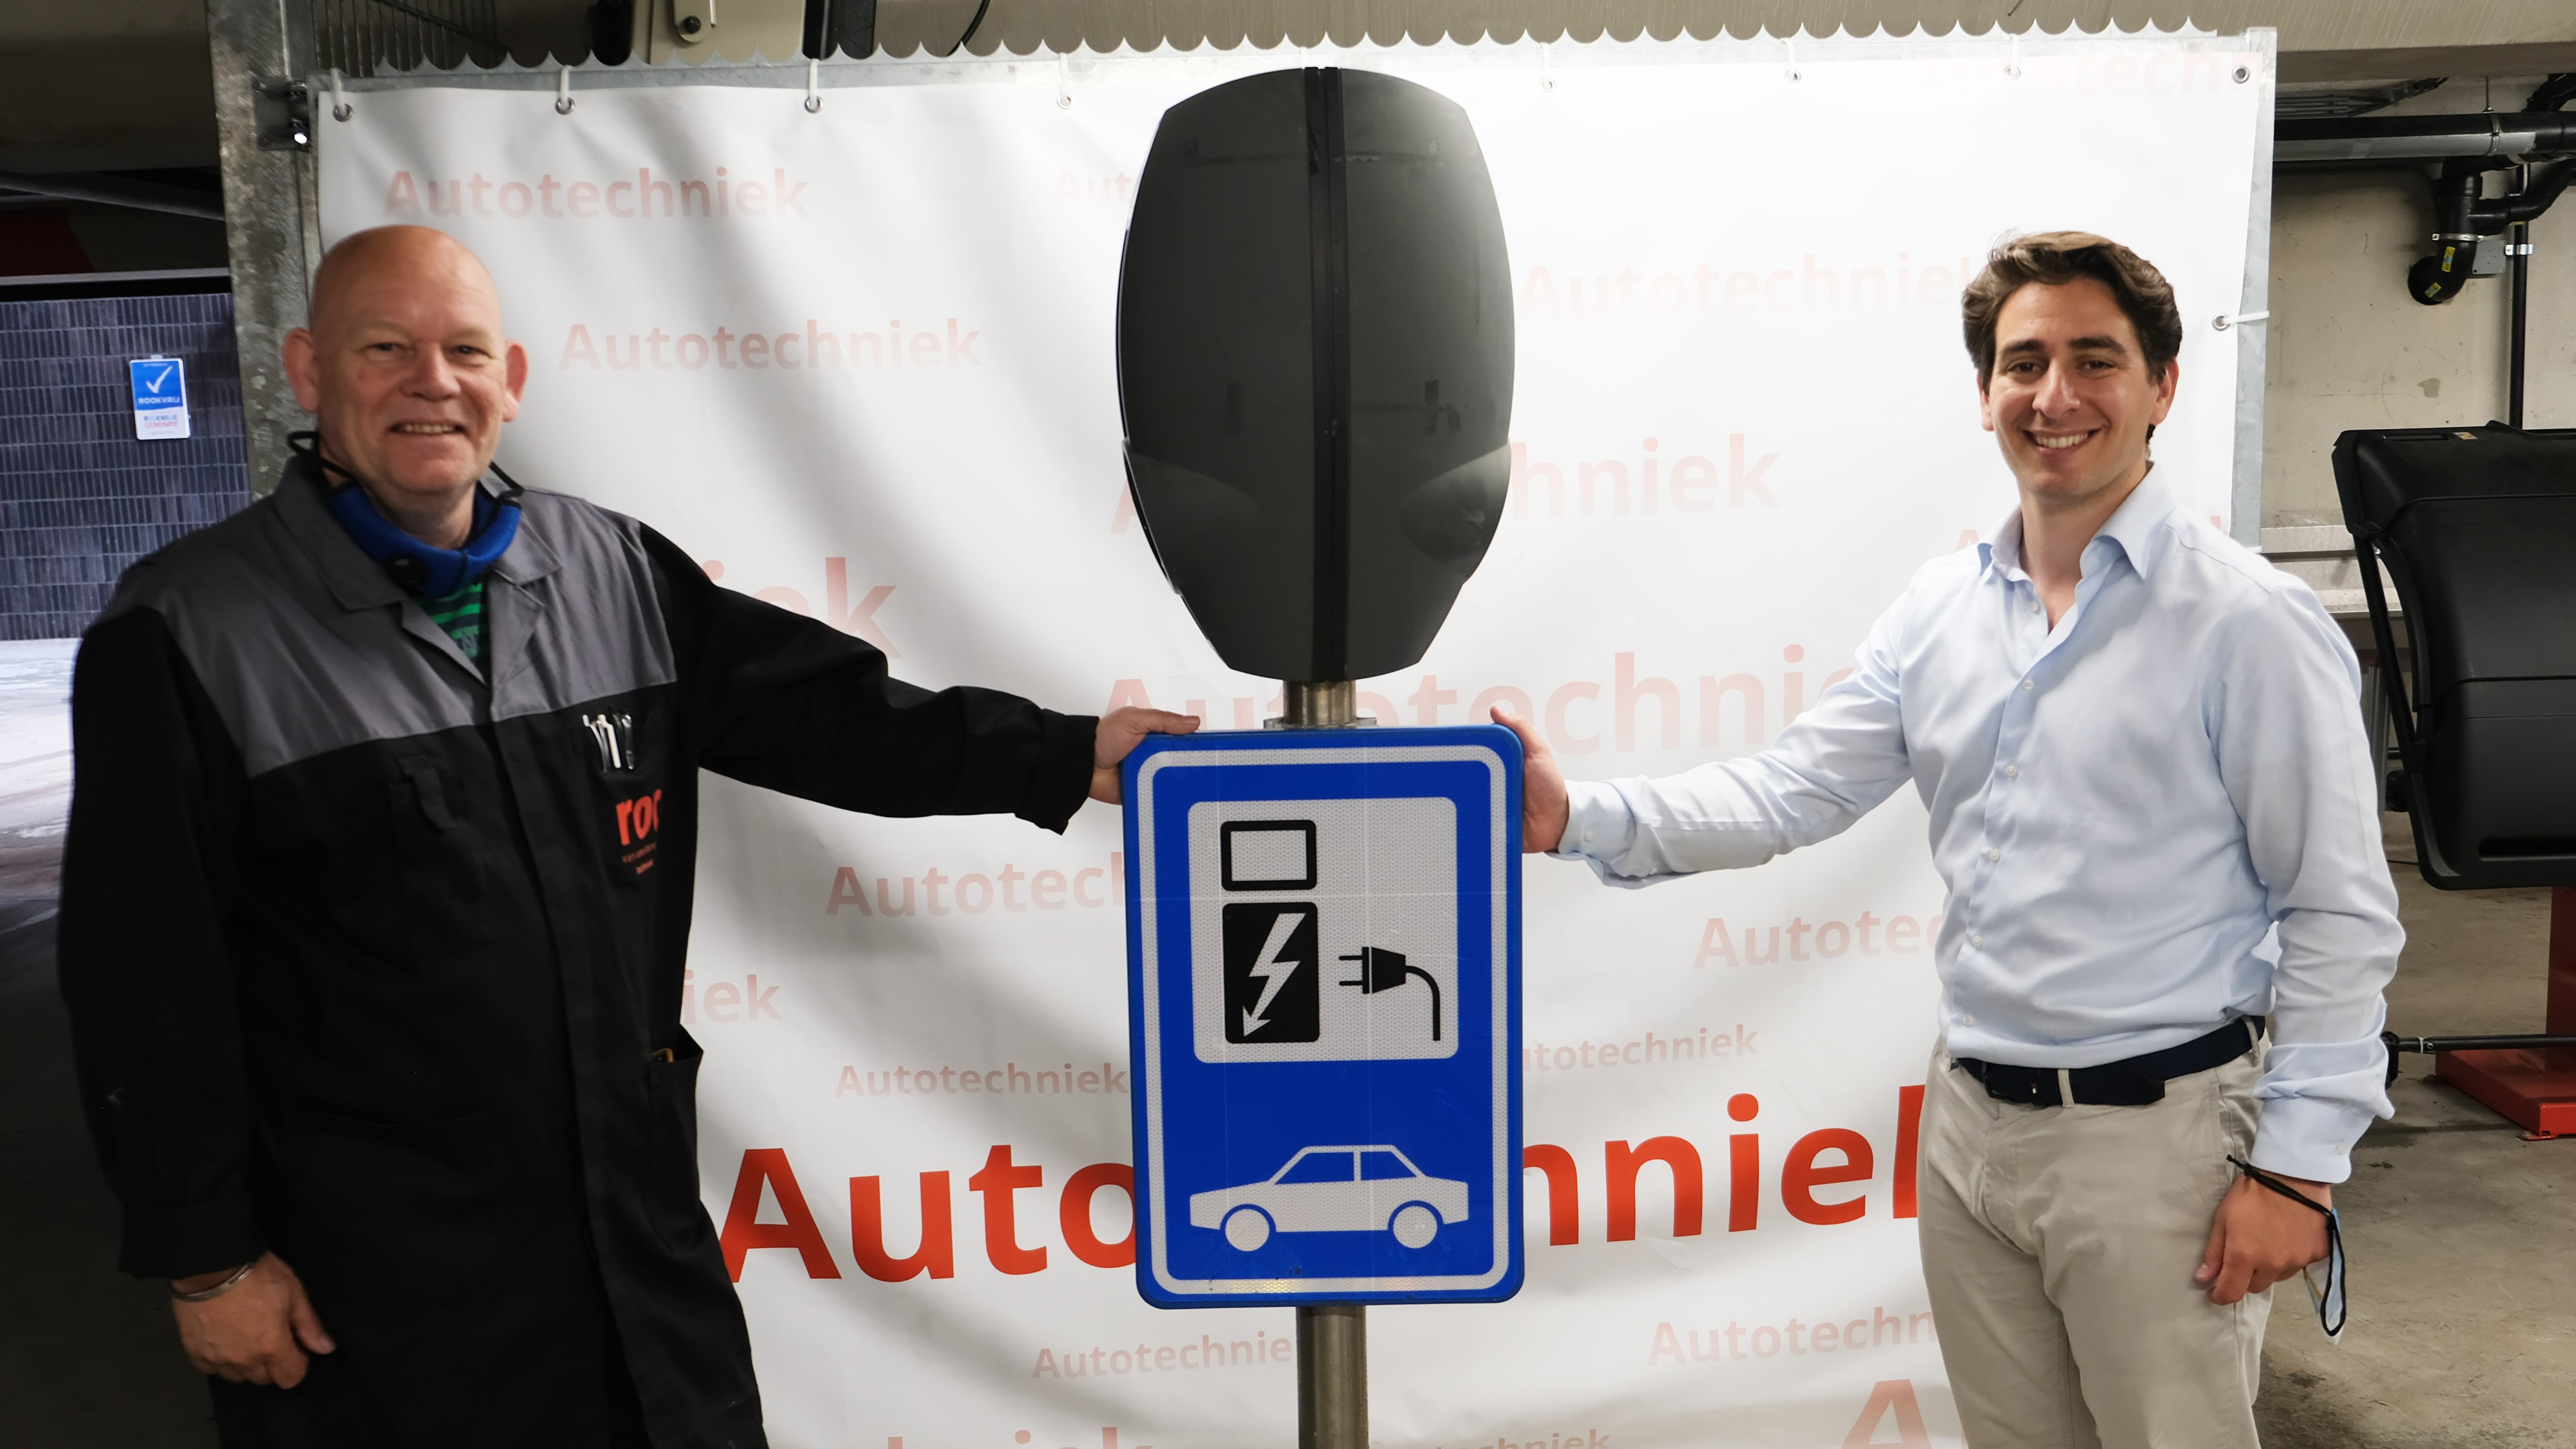 Maxime van Gelder, Account Manager at EVBox Benelux, handed over the charging stations to Rob Klerk, lecturer in electrical engineering at the ROC in Amsterdam.